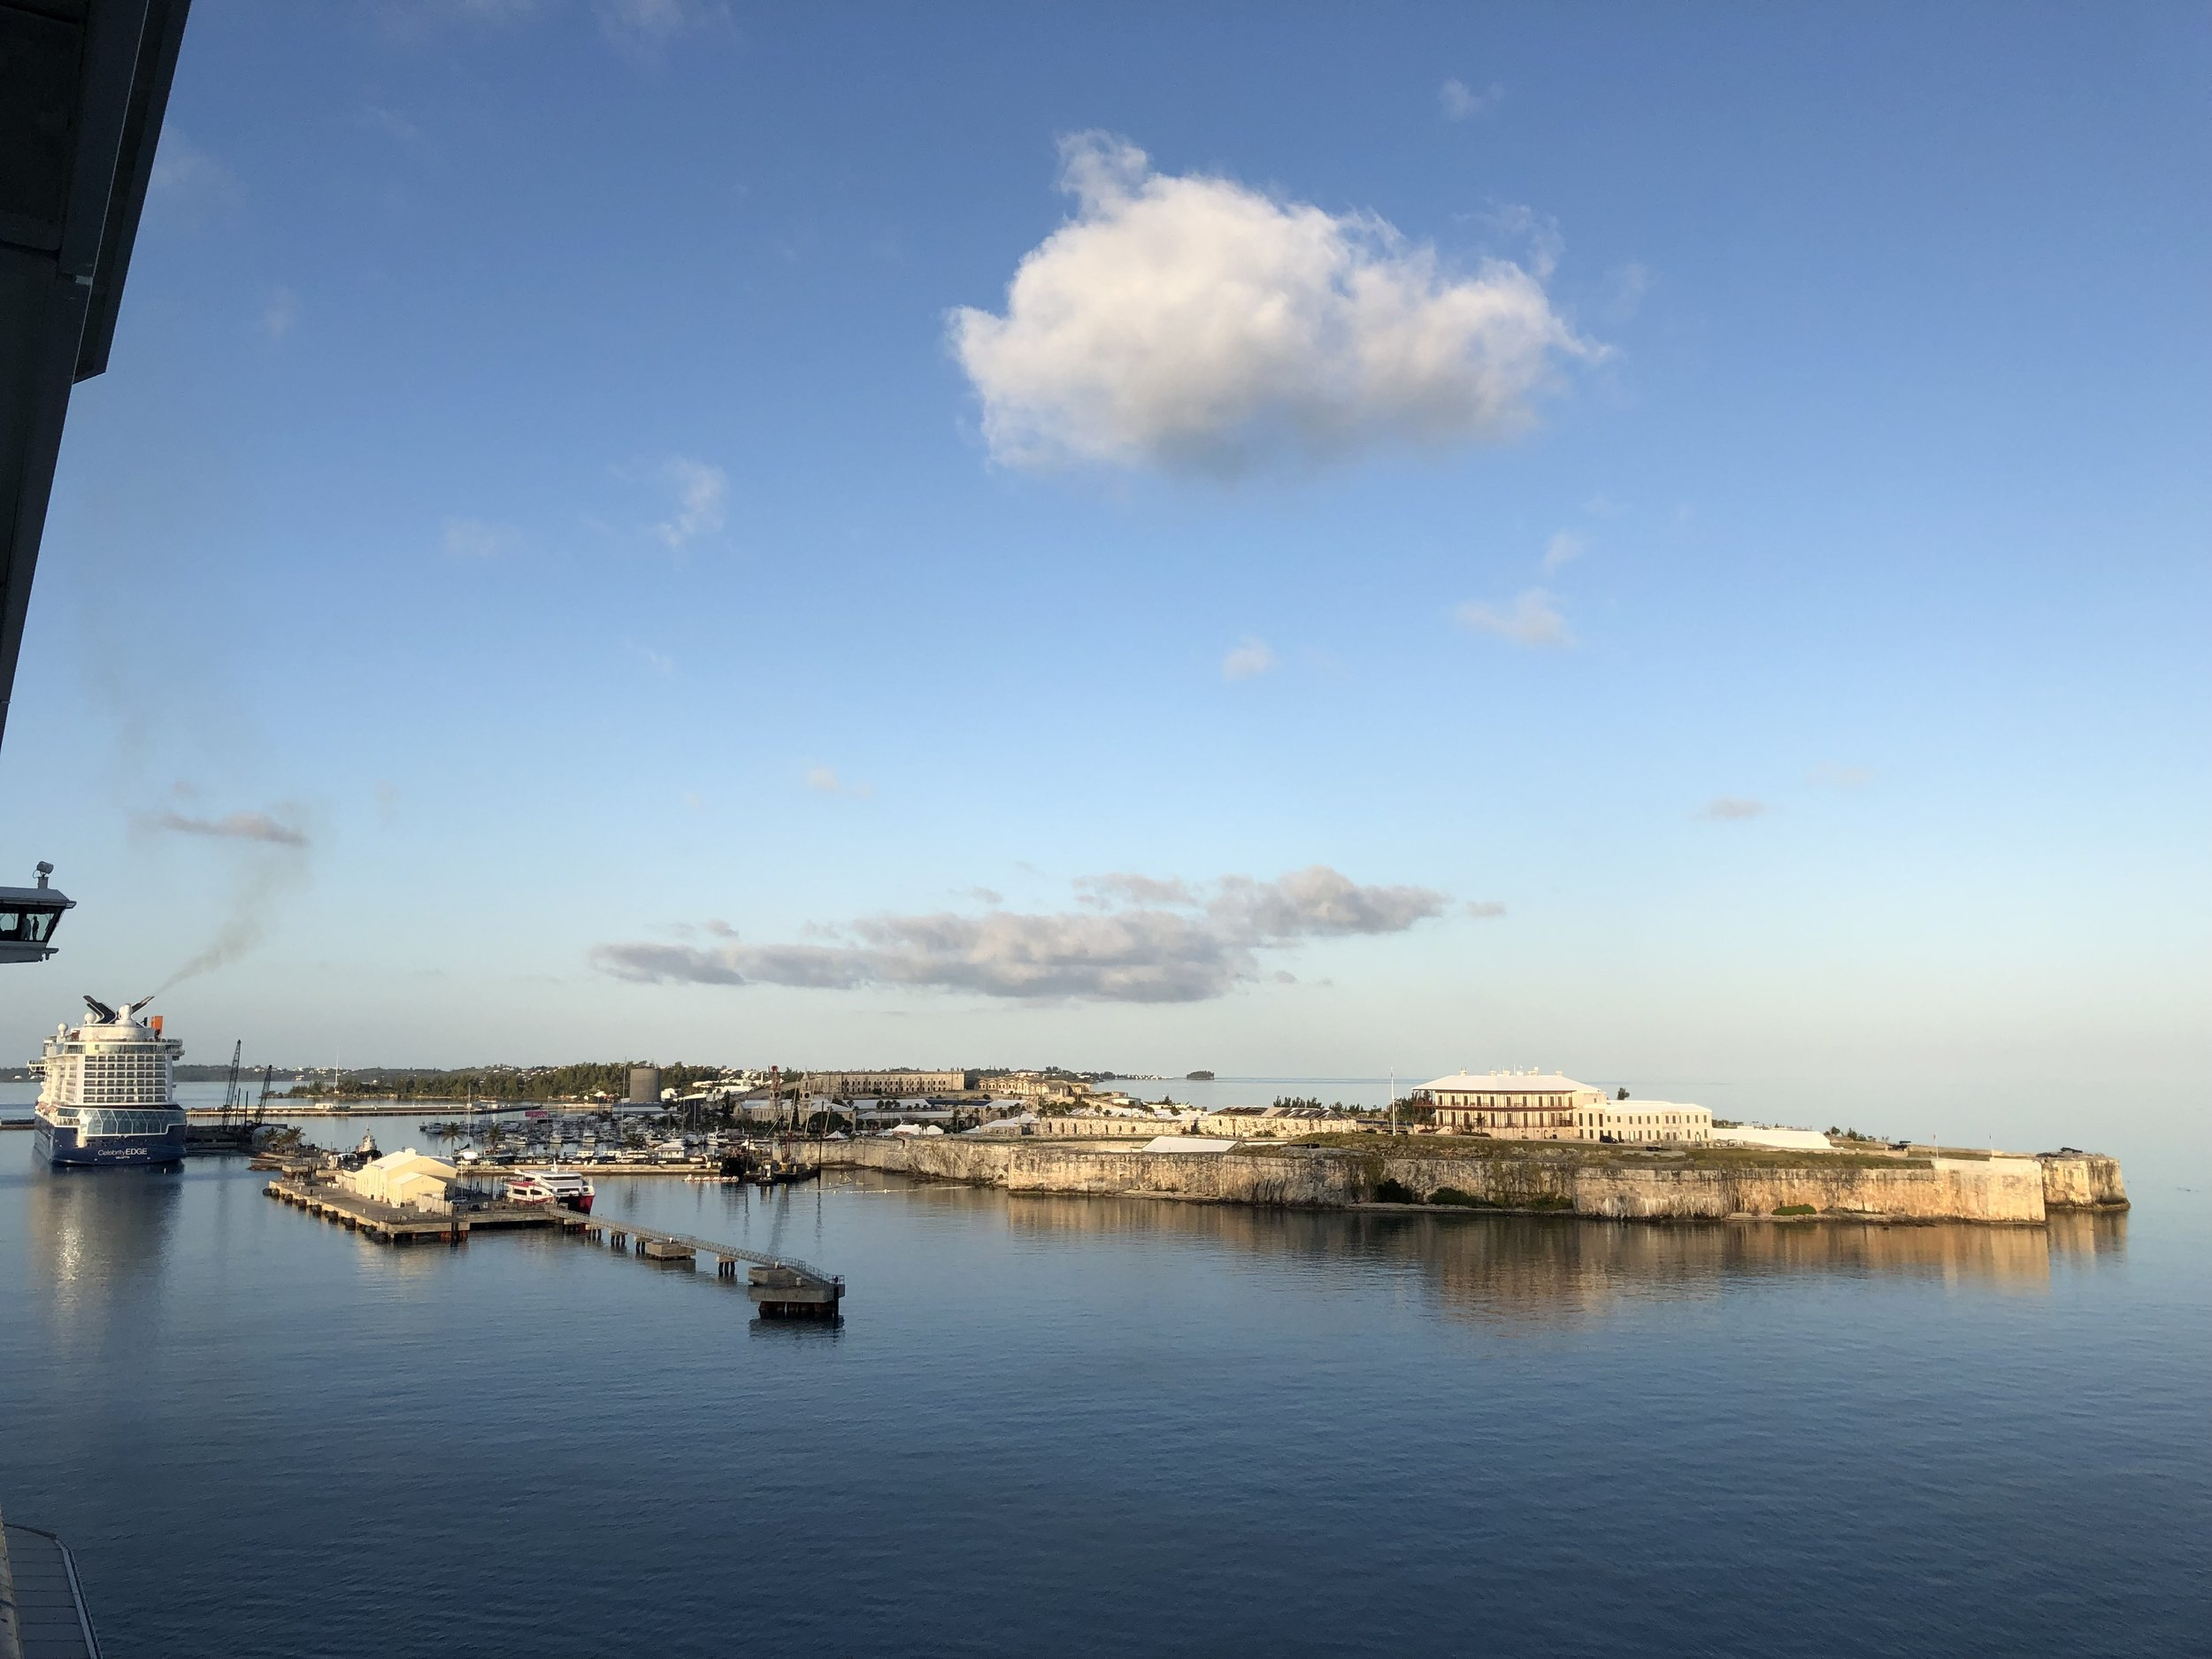 The Royal Naval Dockyard is the deepwater port where we docked.